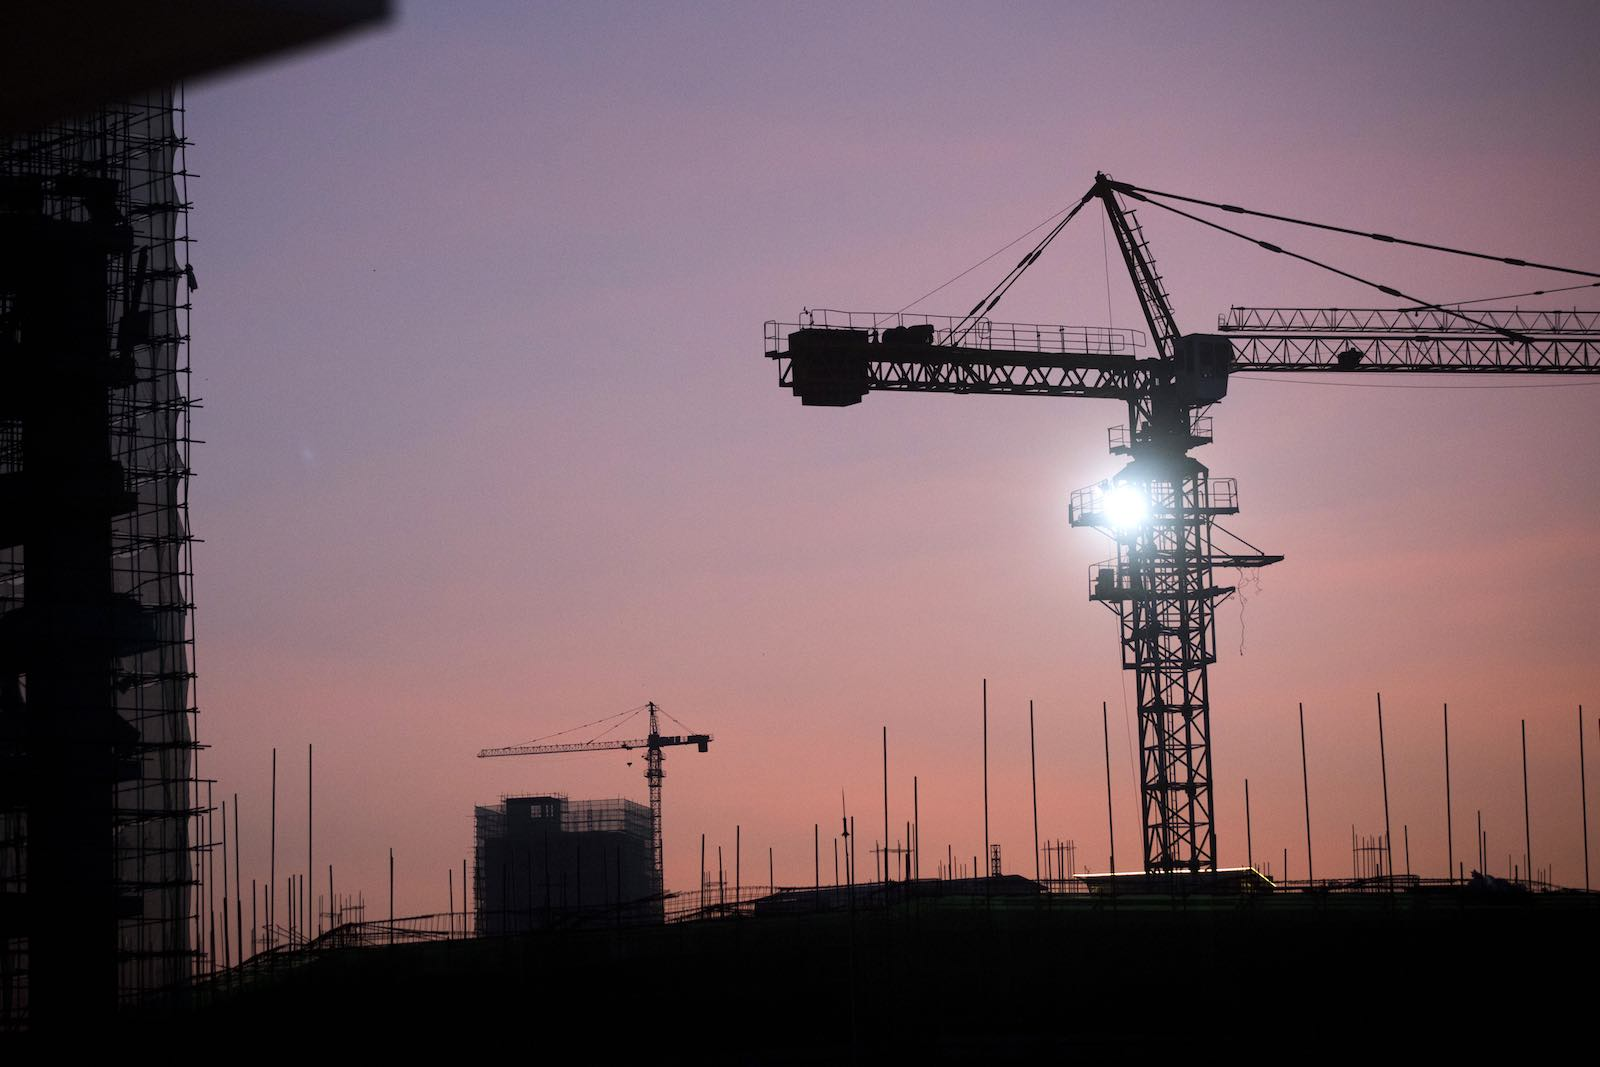 Cranes stand on a construction site at dawn in Sihanoukville, Cambodia, part of an infusion of Chinese-built infrastructure (Photo: Brent Lewin via Getty)